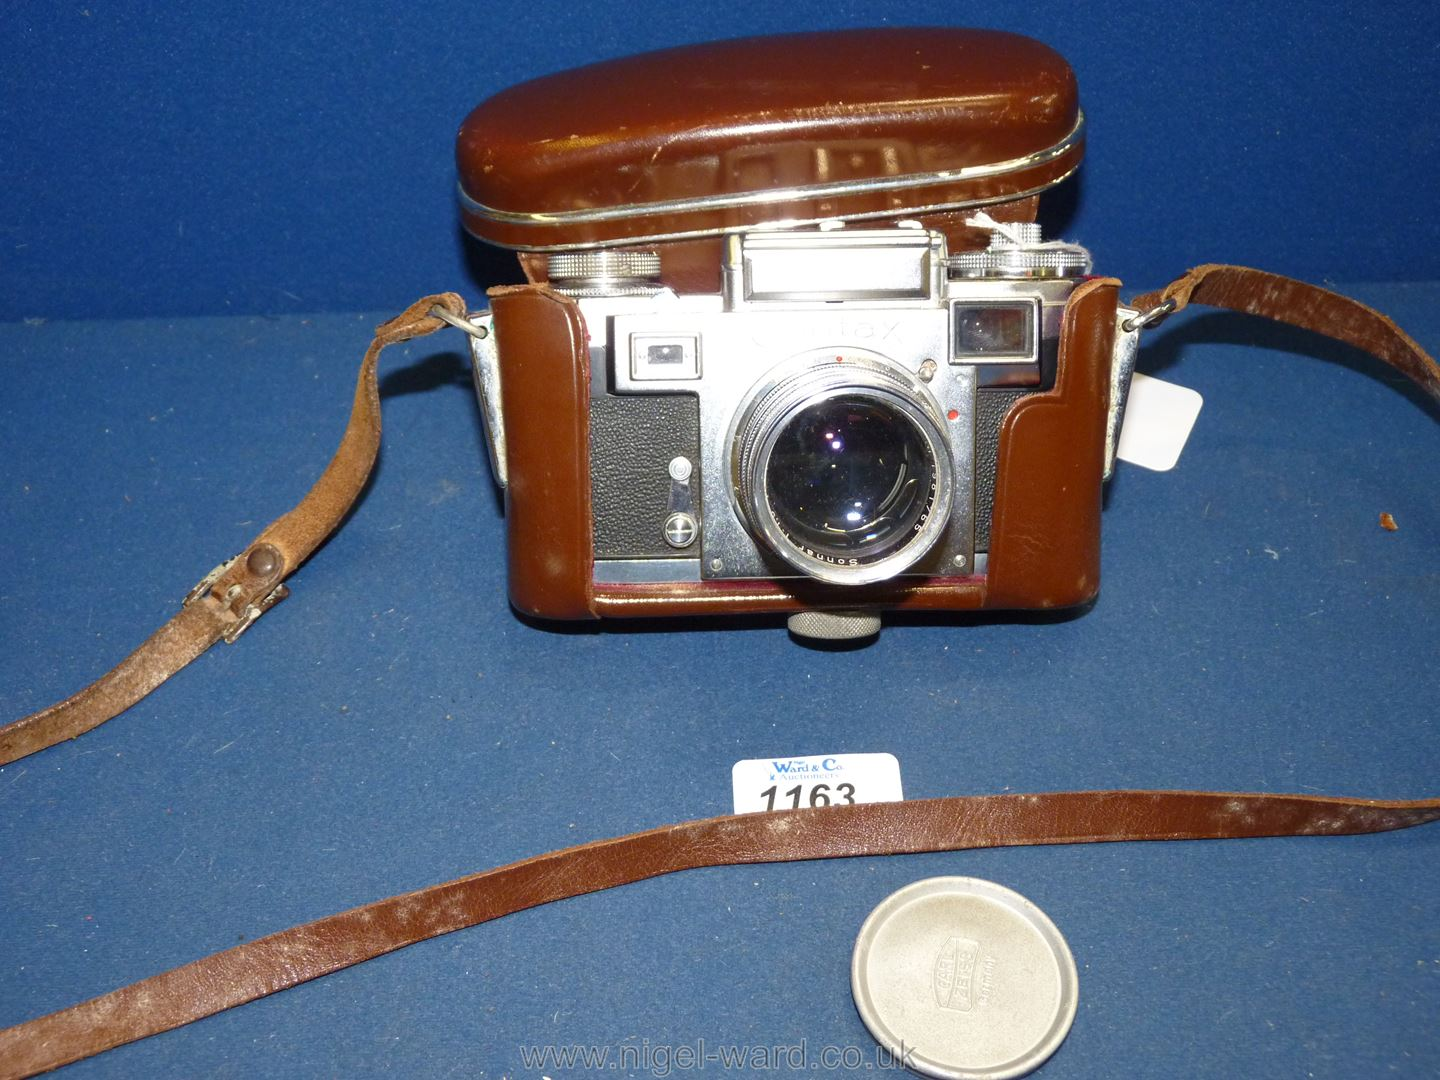 A Circa 1950's - 60's Zeiss Ikon Stuttgart Contax IIIa 35mm Range Finder Camera with a Carl Zeiss - Image 16 of 18